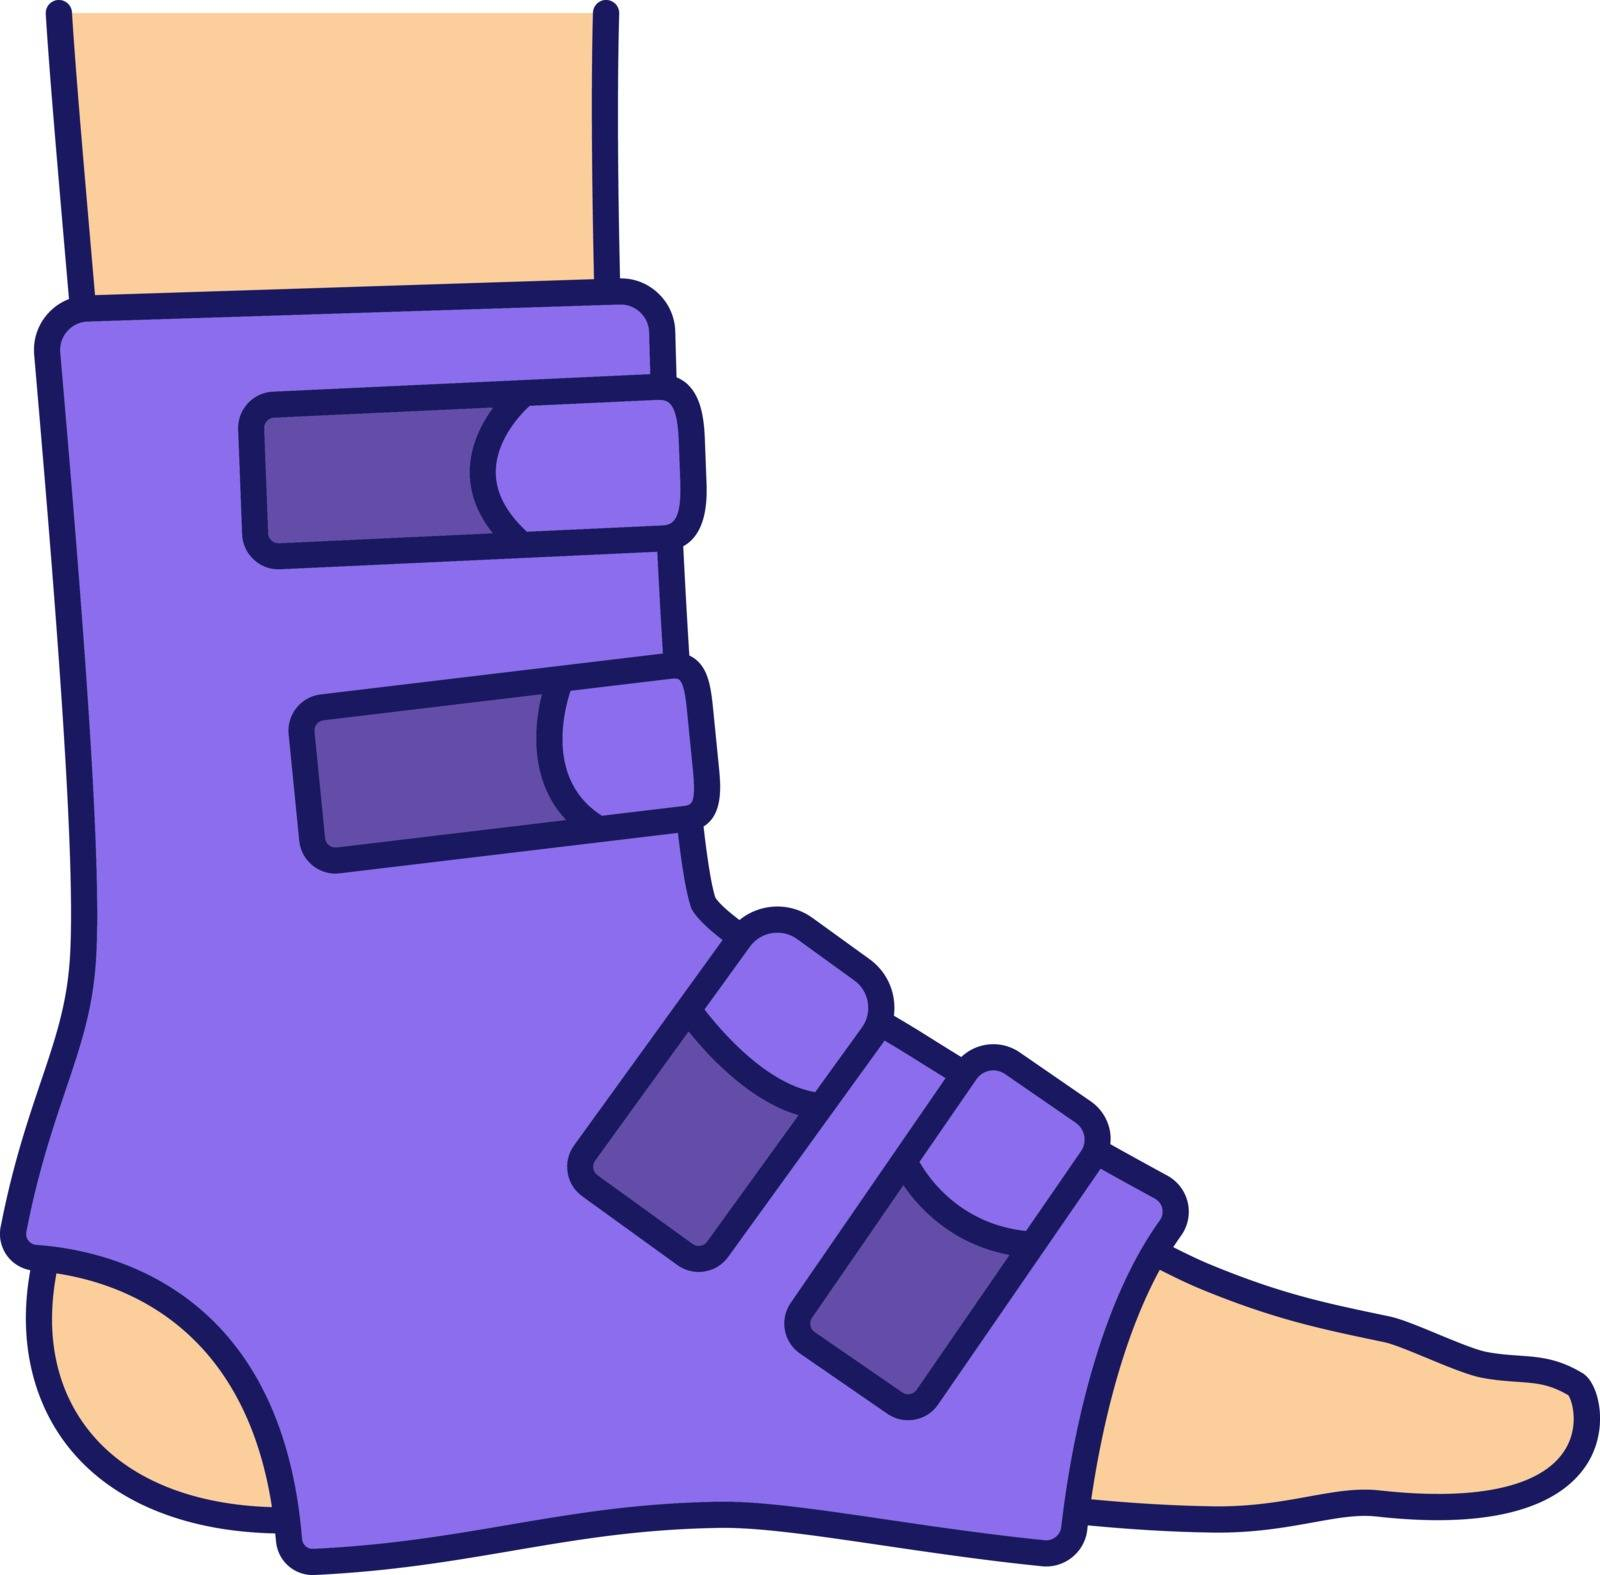 Foot ankle brace color icon. Foot orthosis. Leg brace. Adjustable ankle joint bandage. Joint pain relief, muscle sprain treatment. Isolated vector illustration